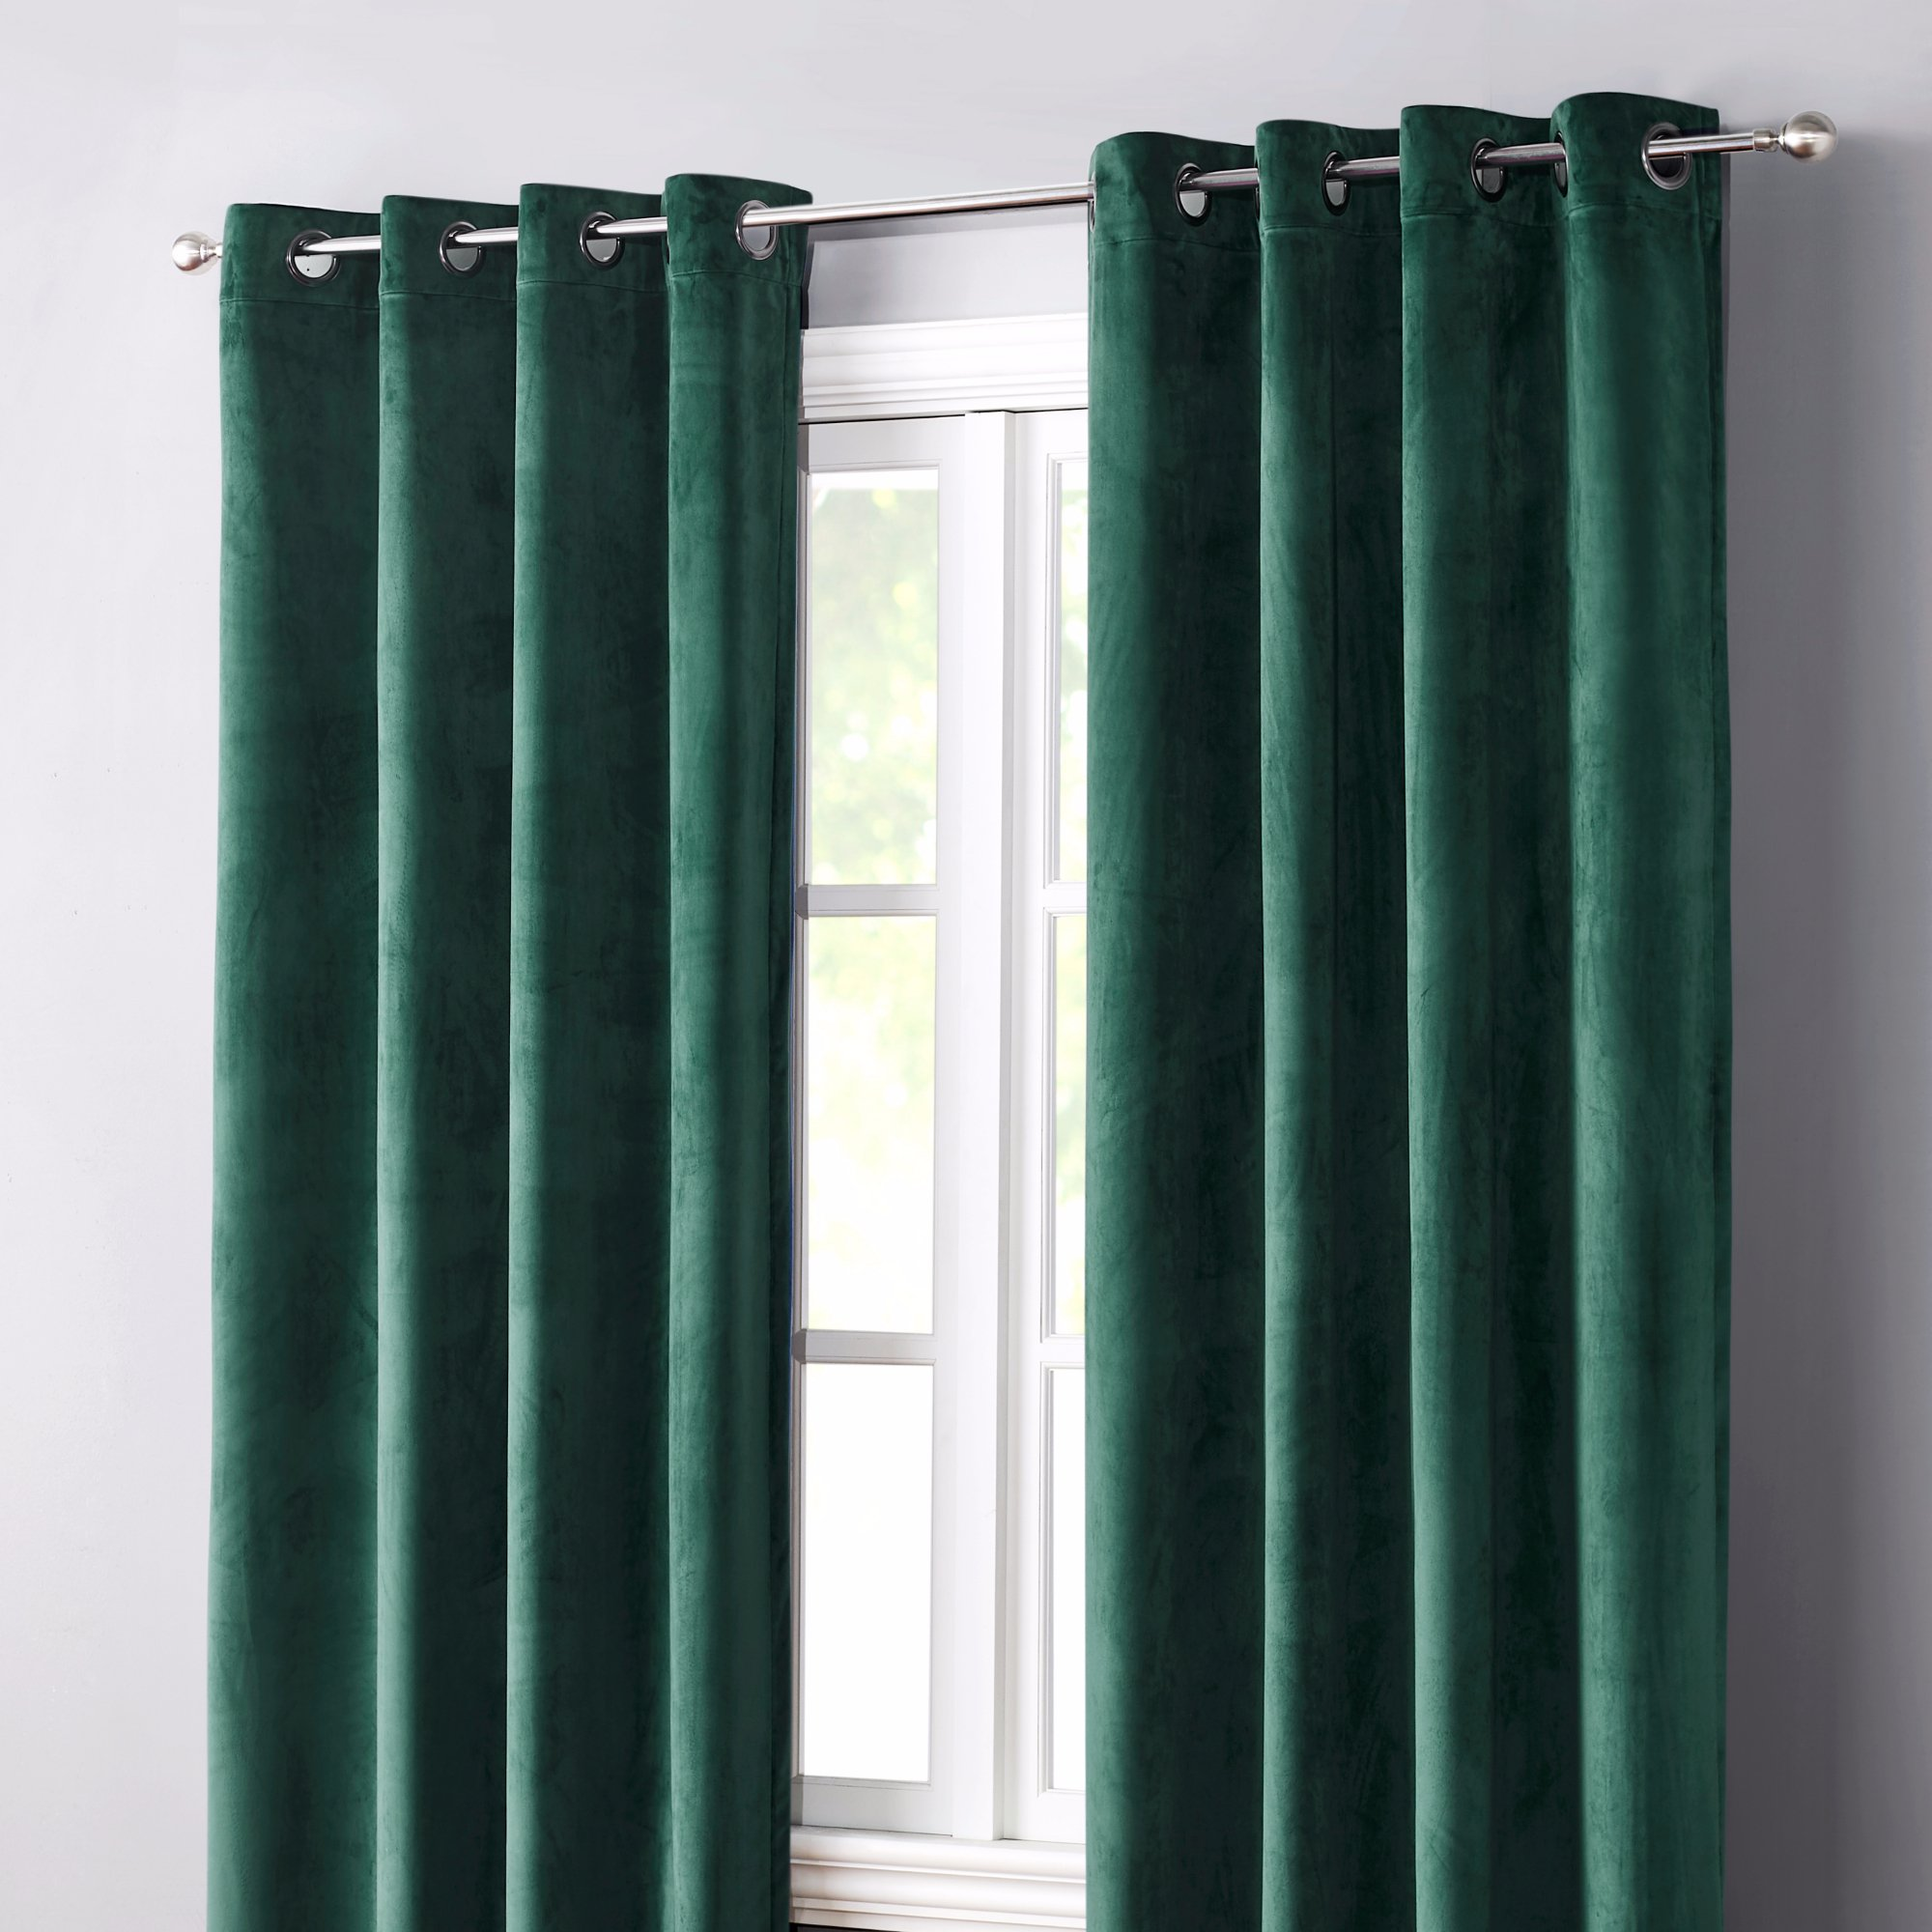 doors curtain and for glass door interior panel window liberty single sliding rods curtains x